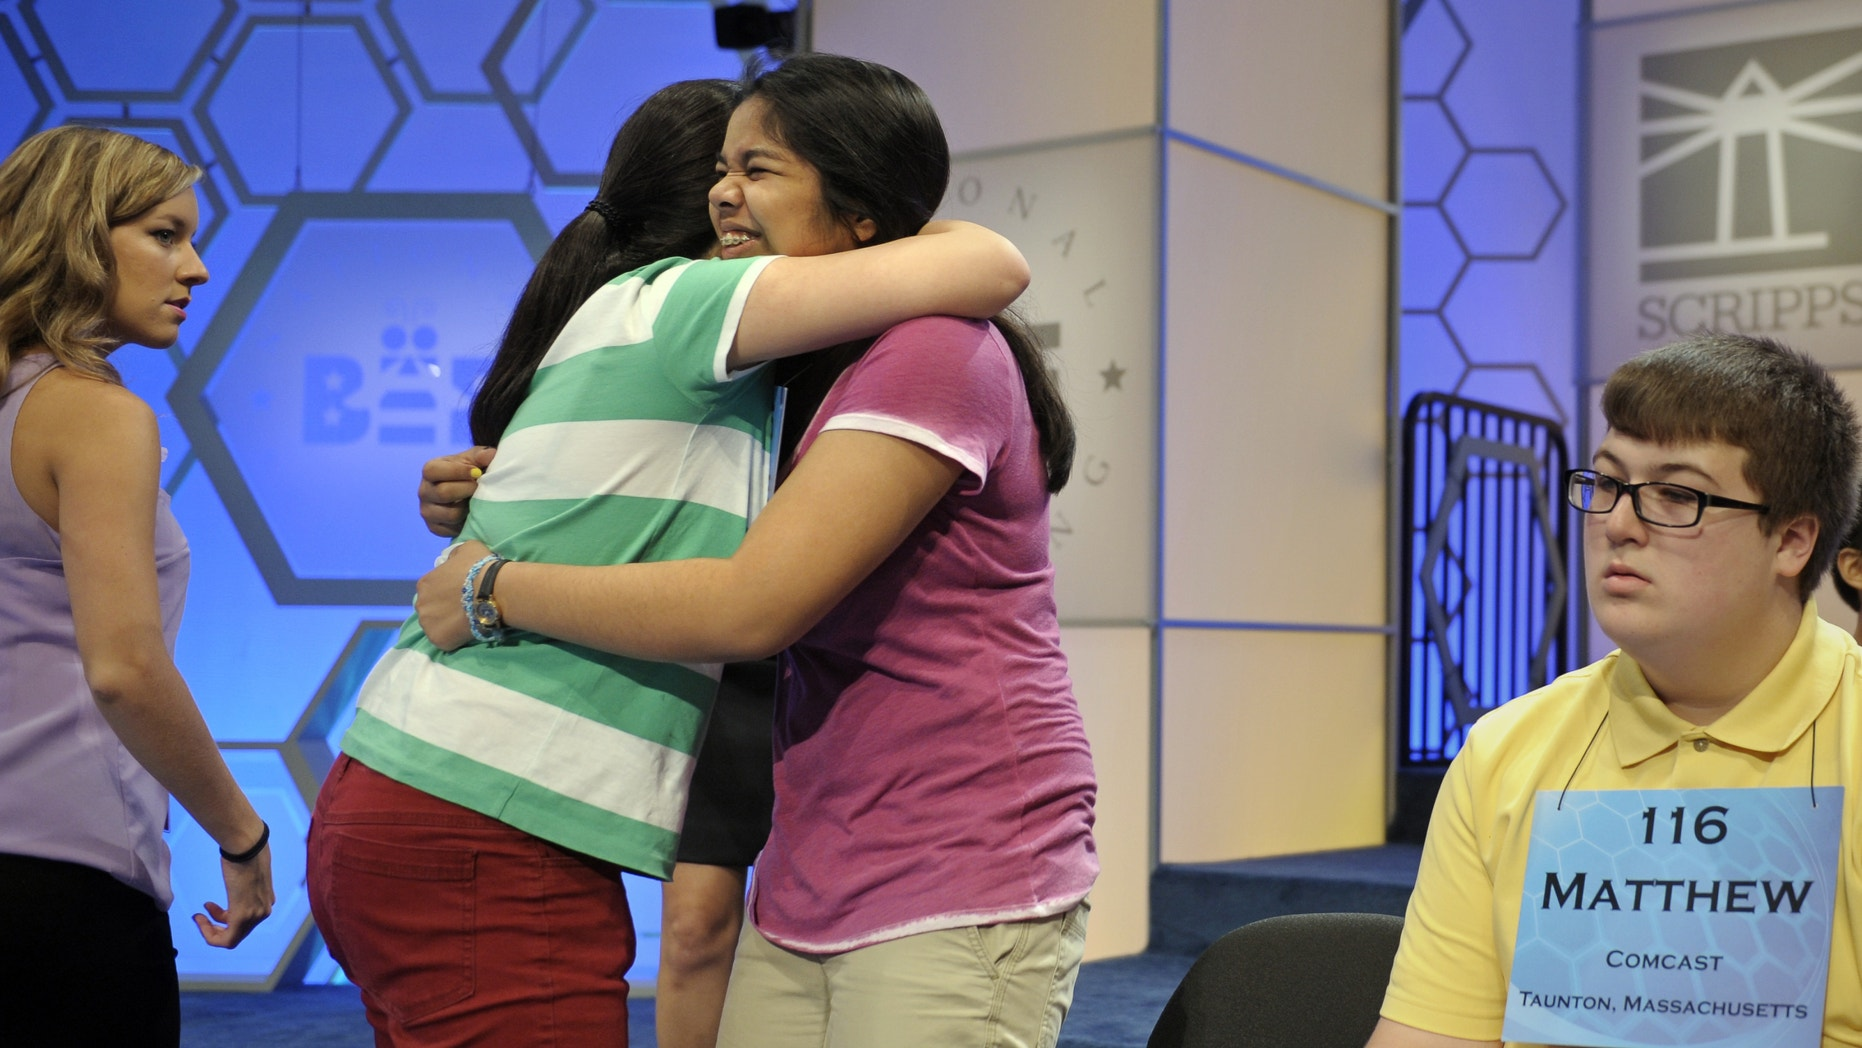 Katharine Wang, 11, of Beijing, China, second from left, hugs Amber Born, 14 of Marblehead, Massachusetts at the start of the semifinal round of the Scripps National Spelling Bee in Oxon Hill, Md., Thursday, May 30, 2013. Matthew Donohue of Kingston, Mass. is at right. (AP Photo/Cliff Owen)